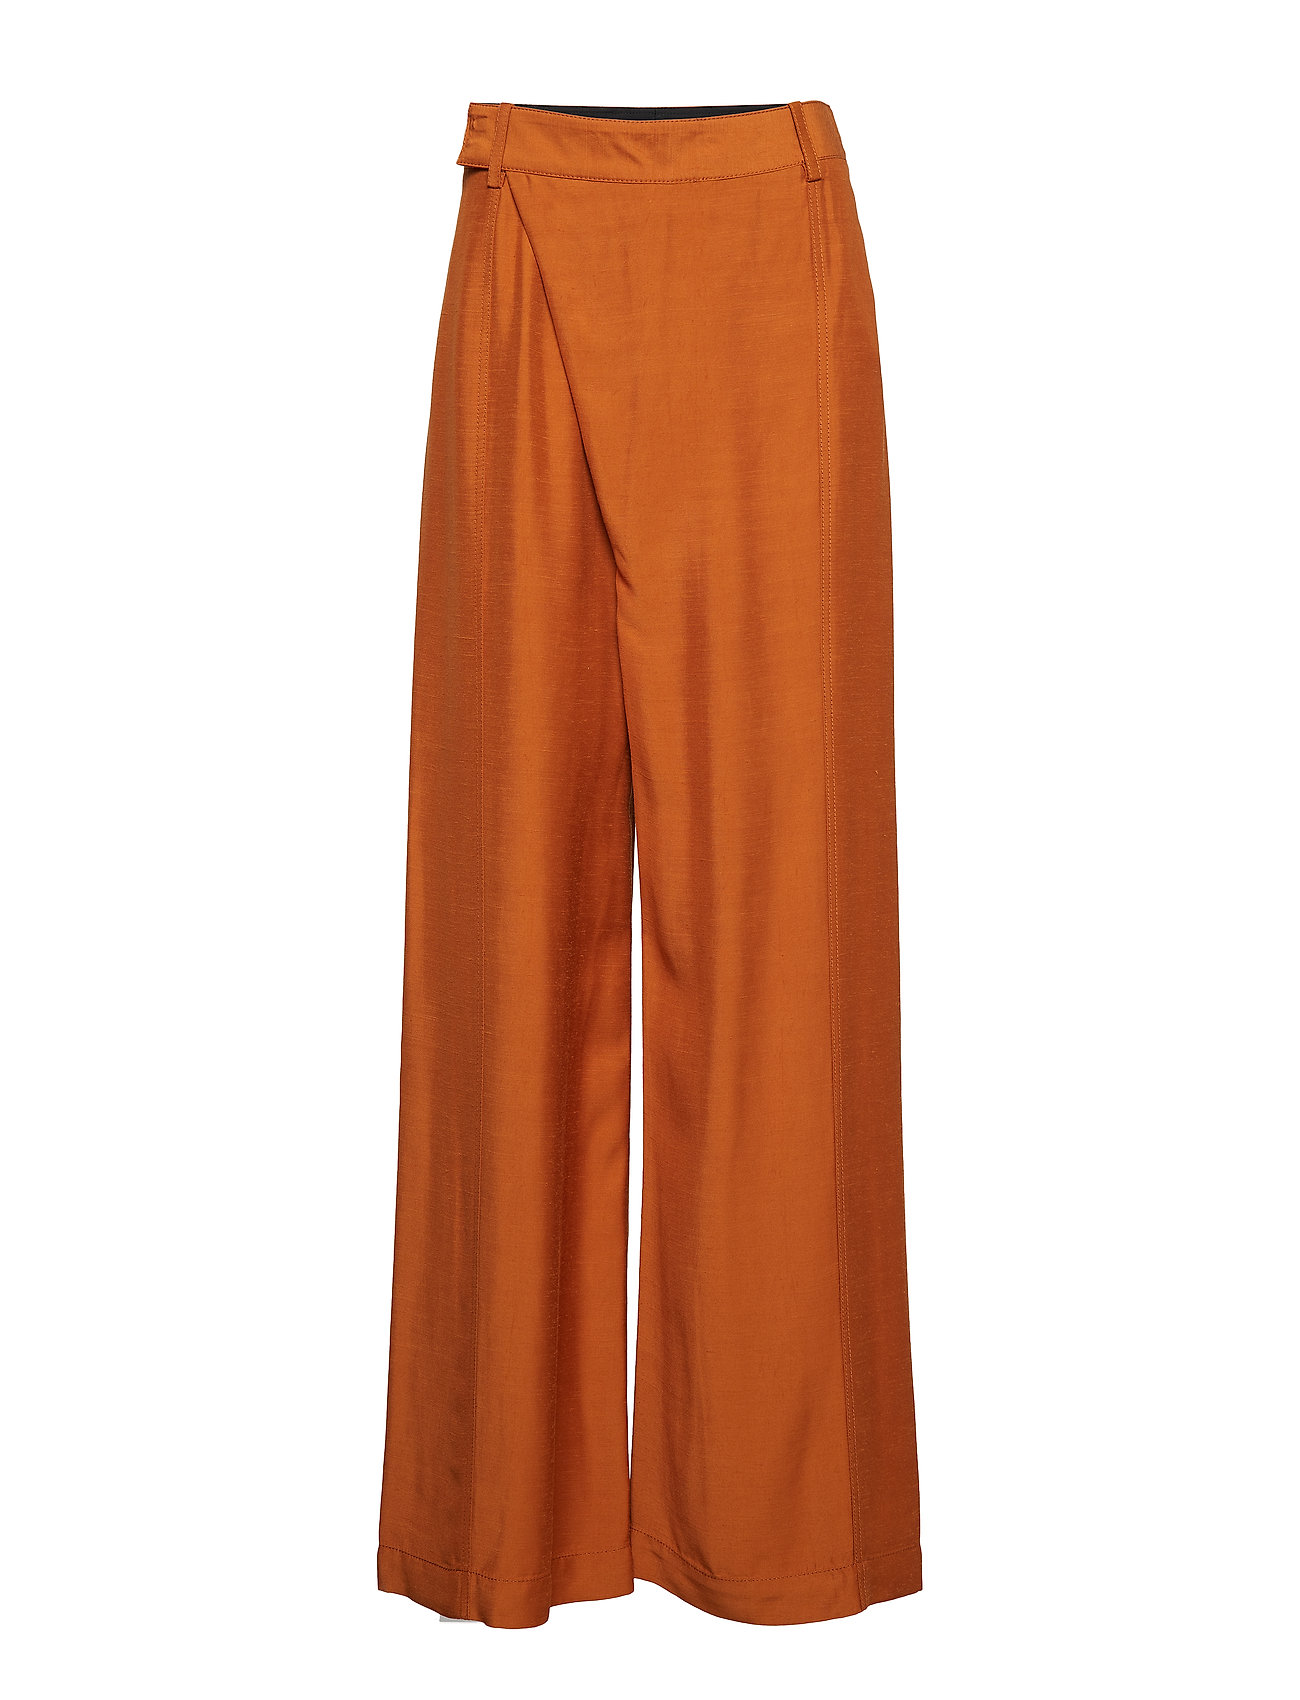 Image of Sateen Front Overlap Long Pant Vide Bukser Orange 3.1 Phillip Lim (3127174969)